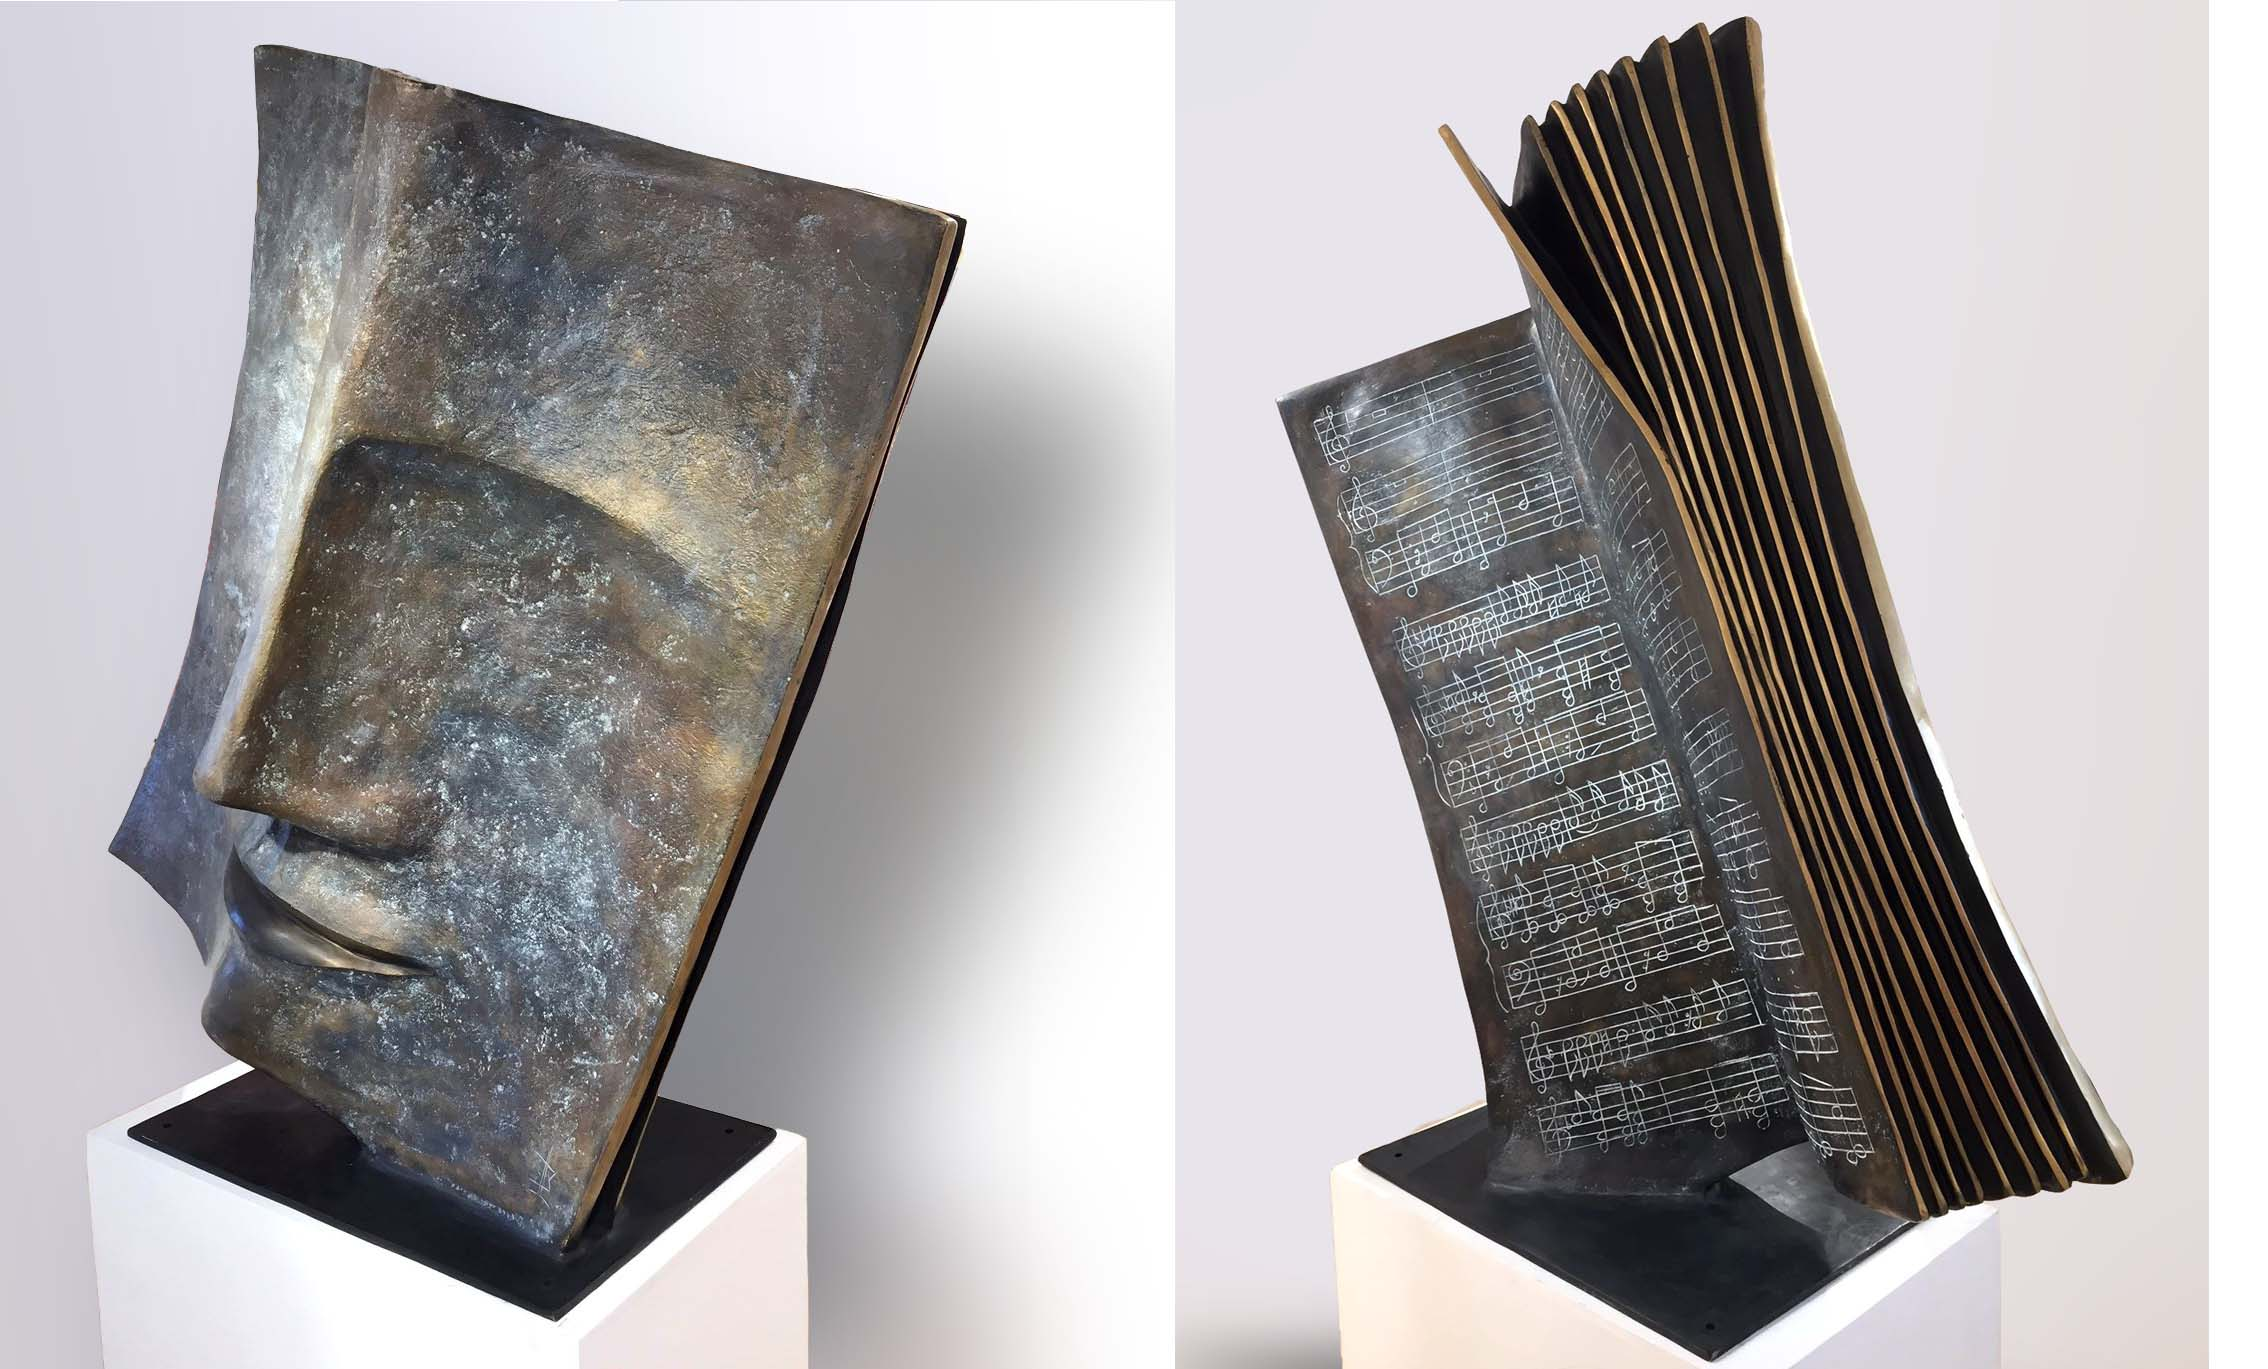 MUSIC BOOK Bronze 175x175x70cm / 69x69x27,5 inches